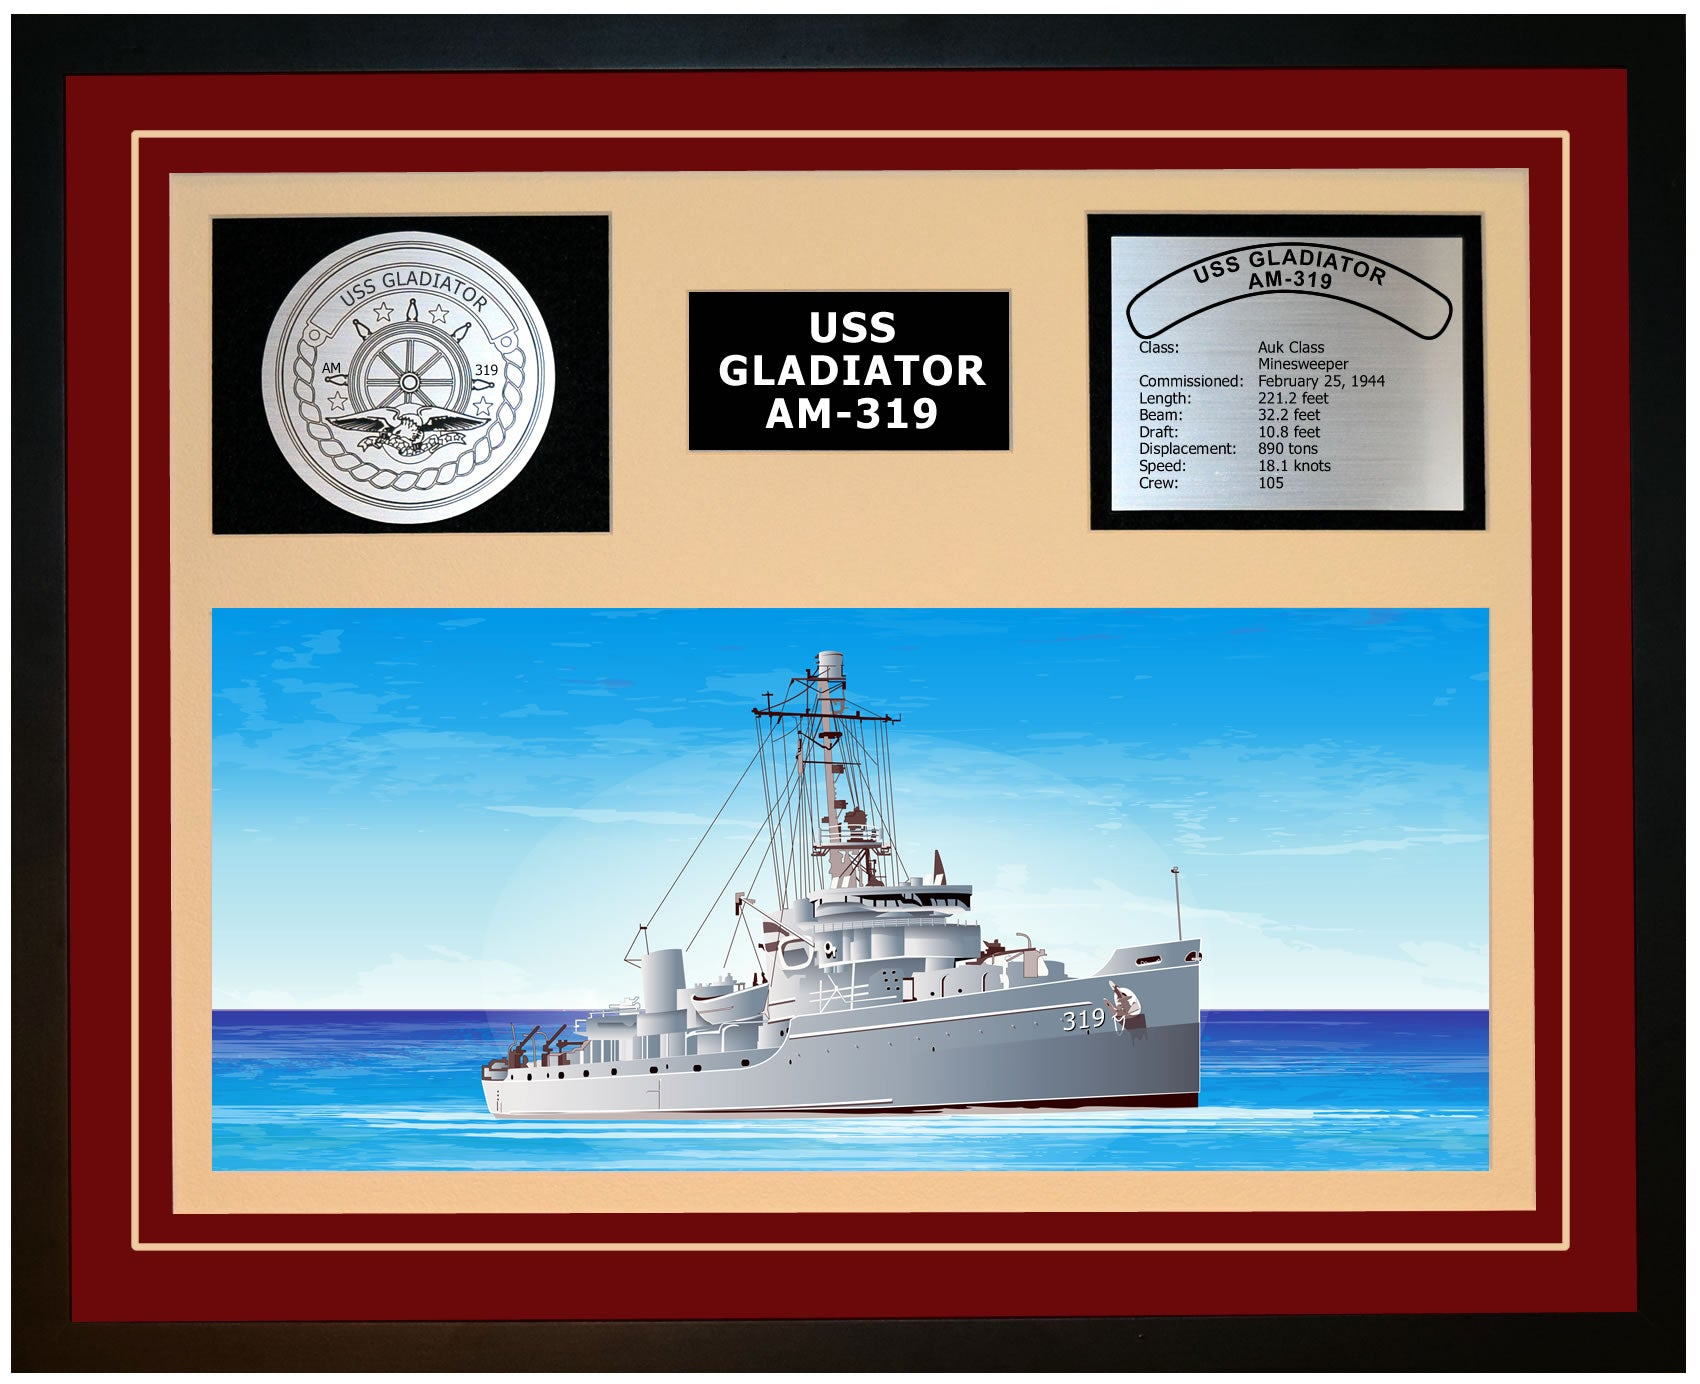 USS GLADIATOR AM-319 Framed Navy Ship Display Burgundy